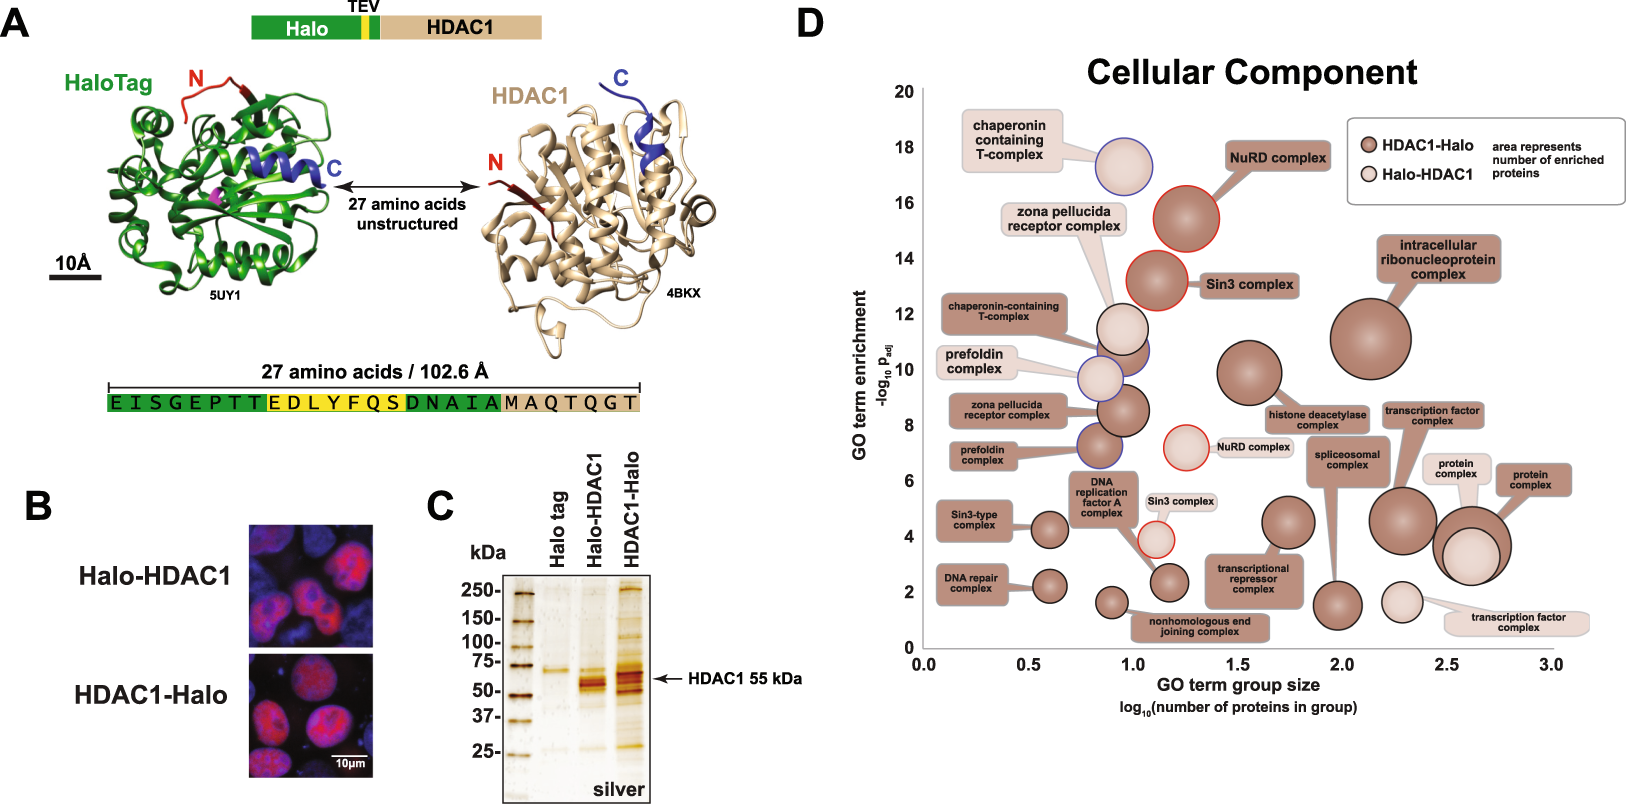 Differential HDAC1/2 network analysis reveals a role for prefoldin